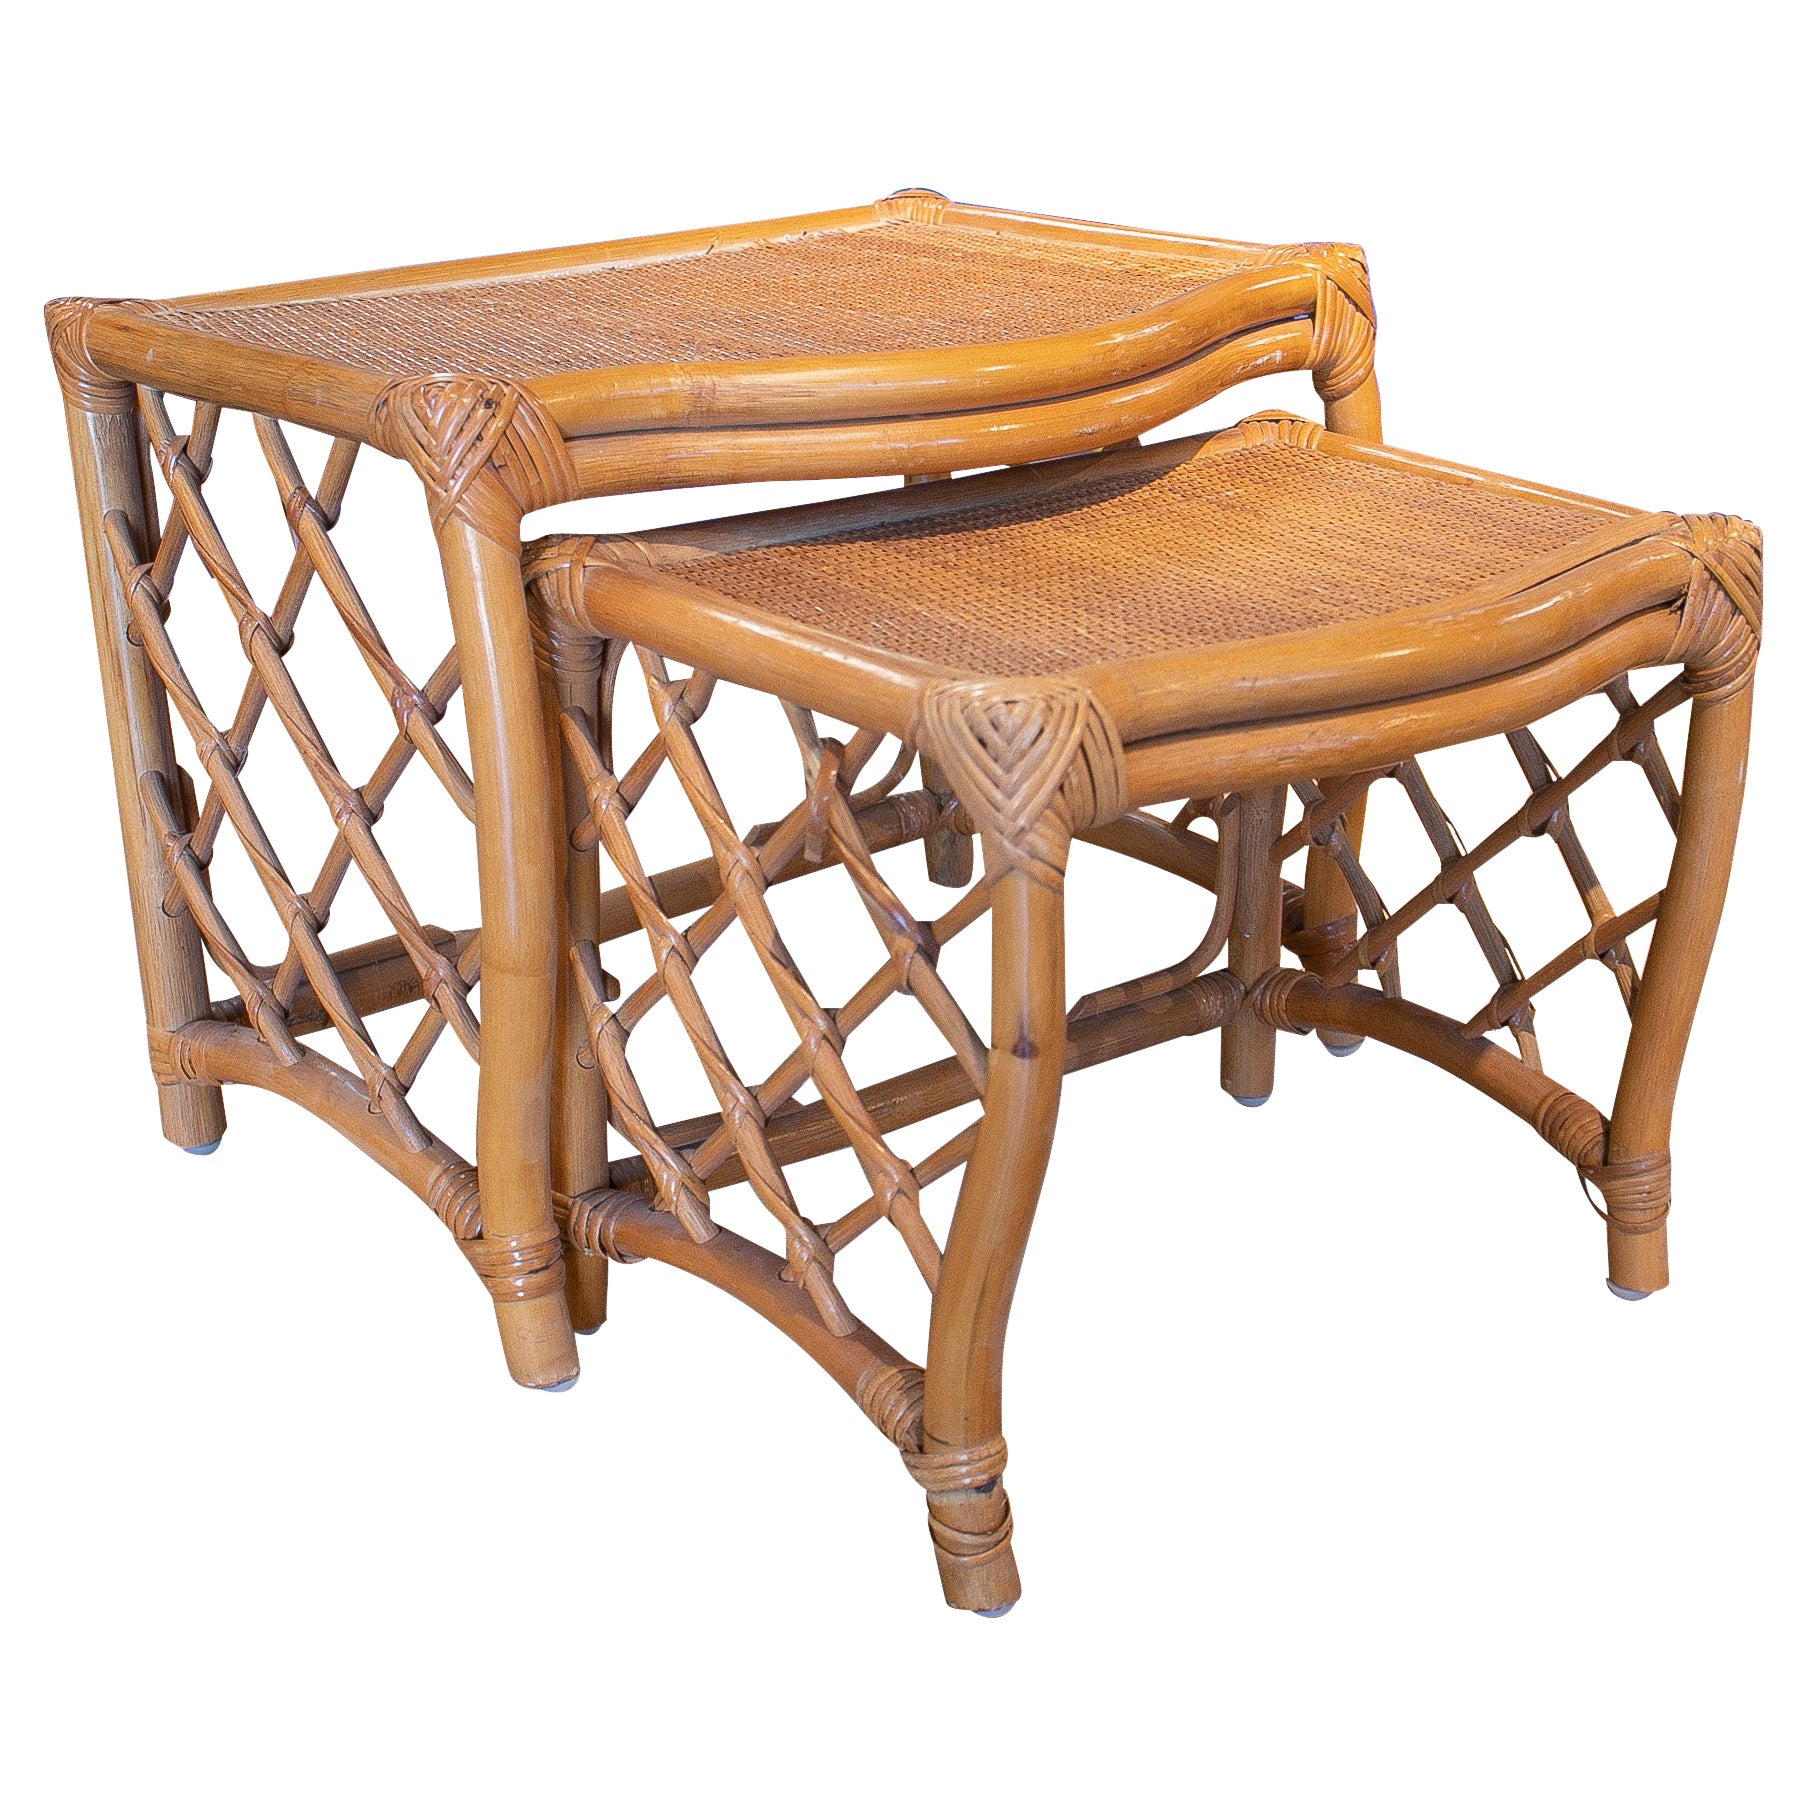 Set of Two 1980s Spanish Hand Woven Bamboo Nesting Tables